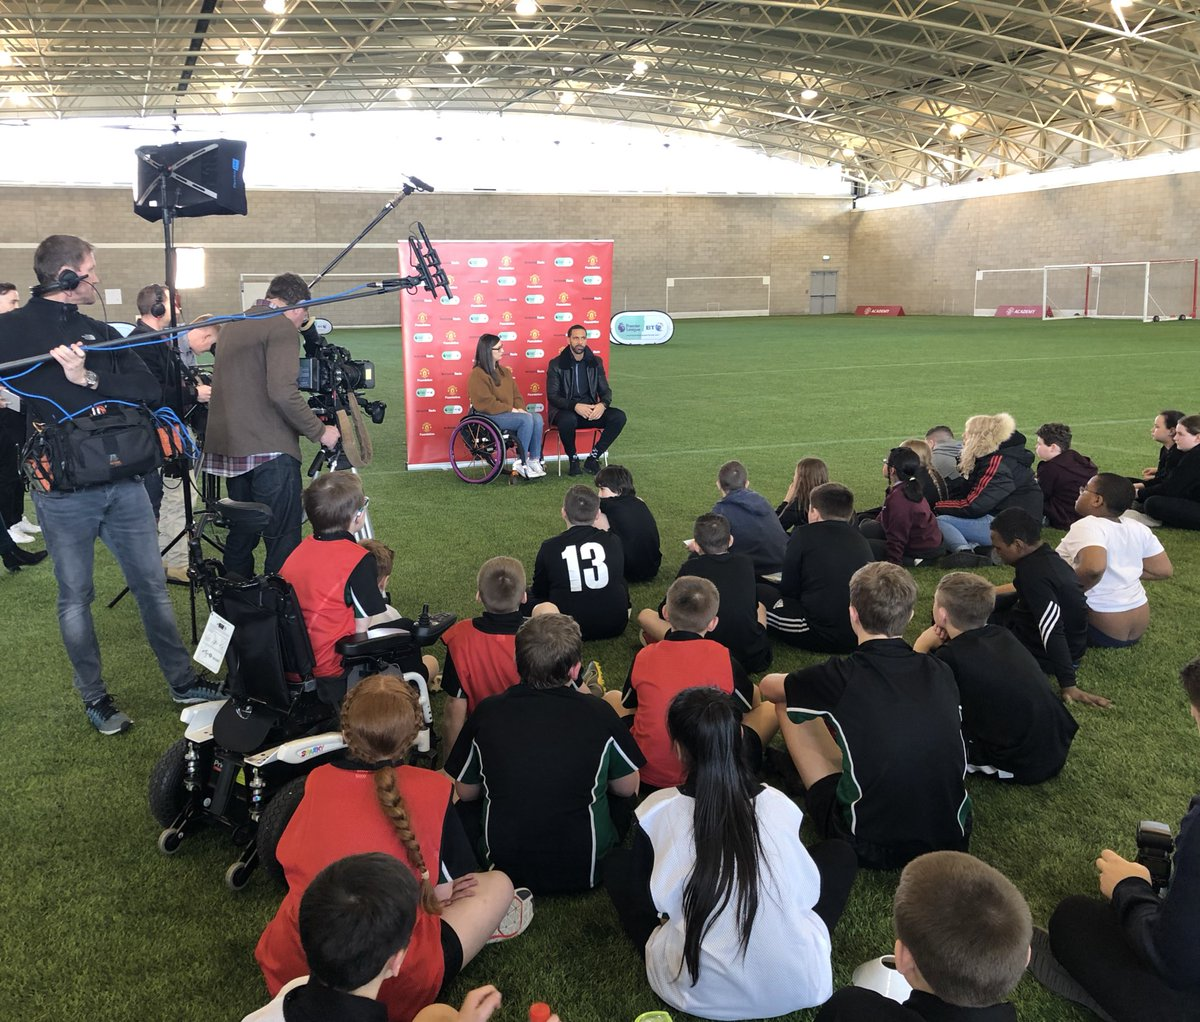 Good afternoon back at Carrington seeing all the brilliant work #PLBTdisability are doing!! Keep Up The Good Work @MU_Foundation @btsport @PLCommunities 💪🏽🔴